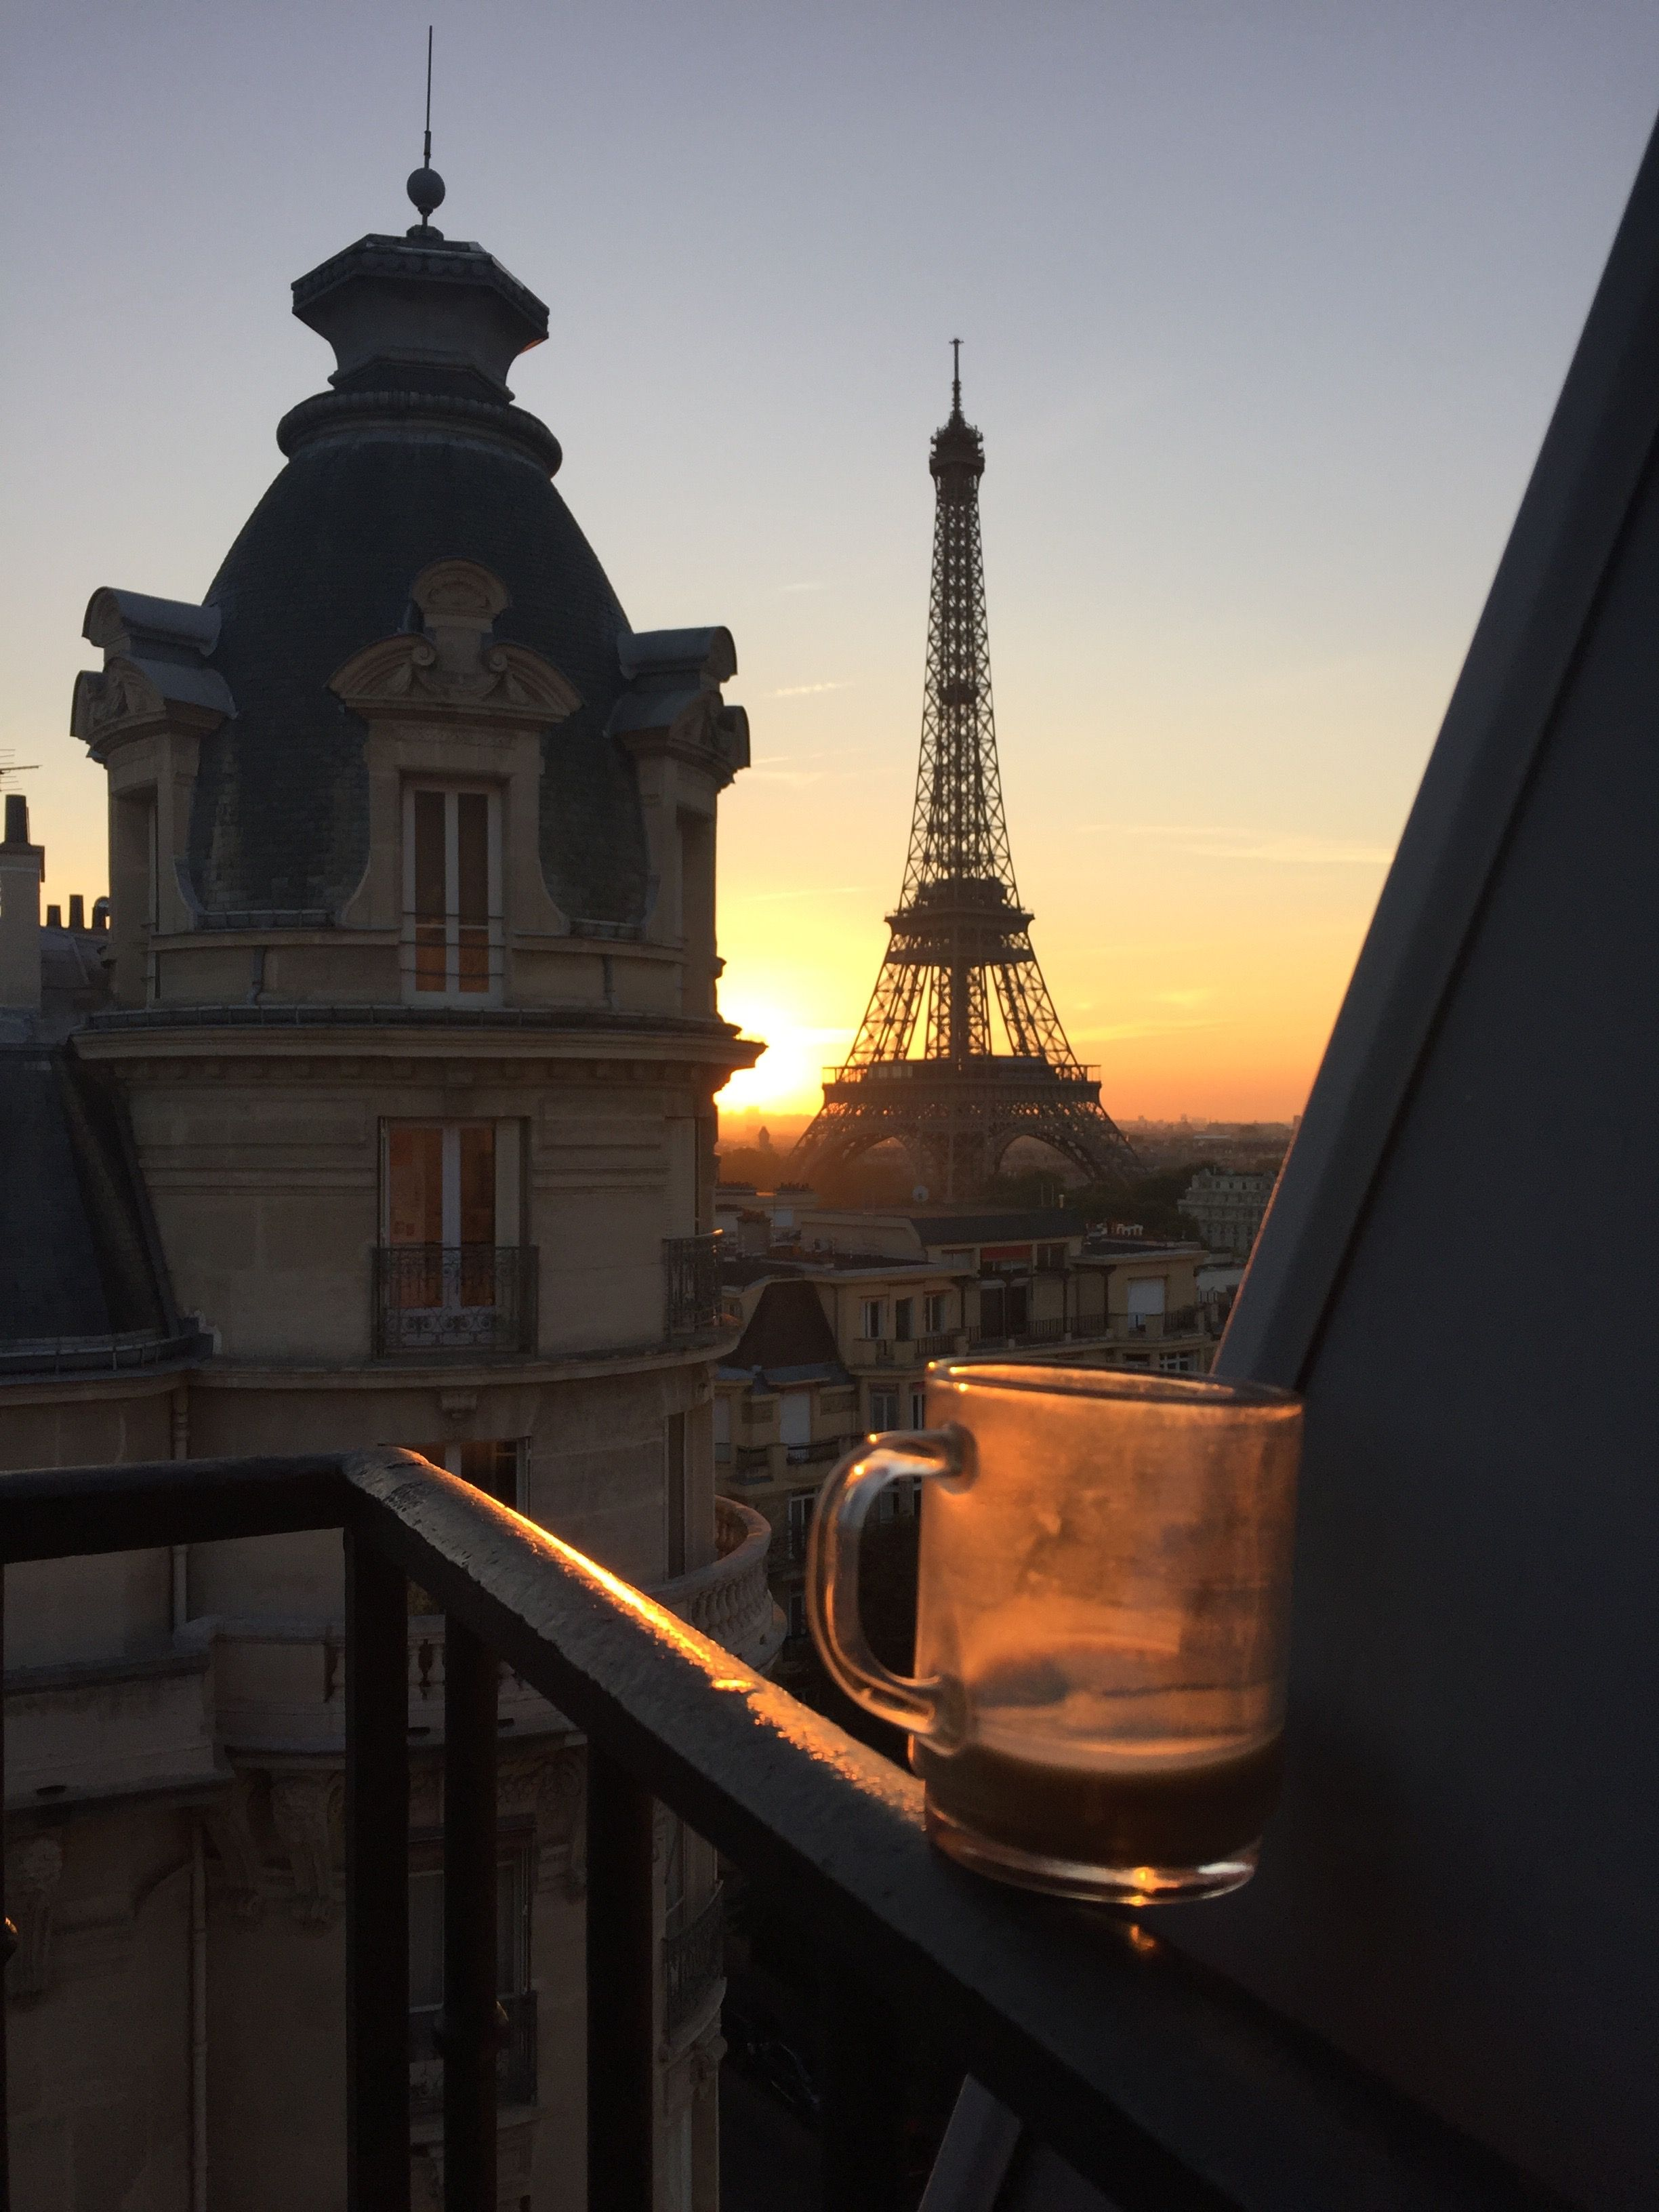 Eiffel tower with cafe in front clipart jpg royalty free library Room with a view! The sunrise seen through the Eiffel tower and a ... jpg royalty free library